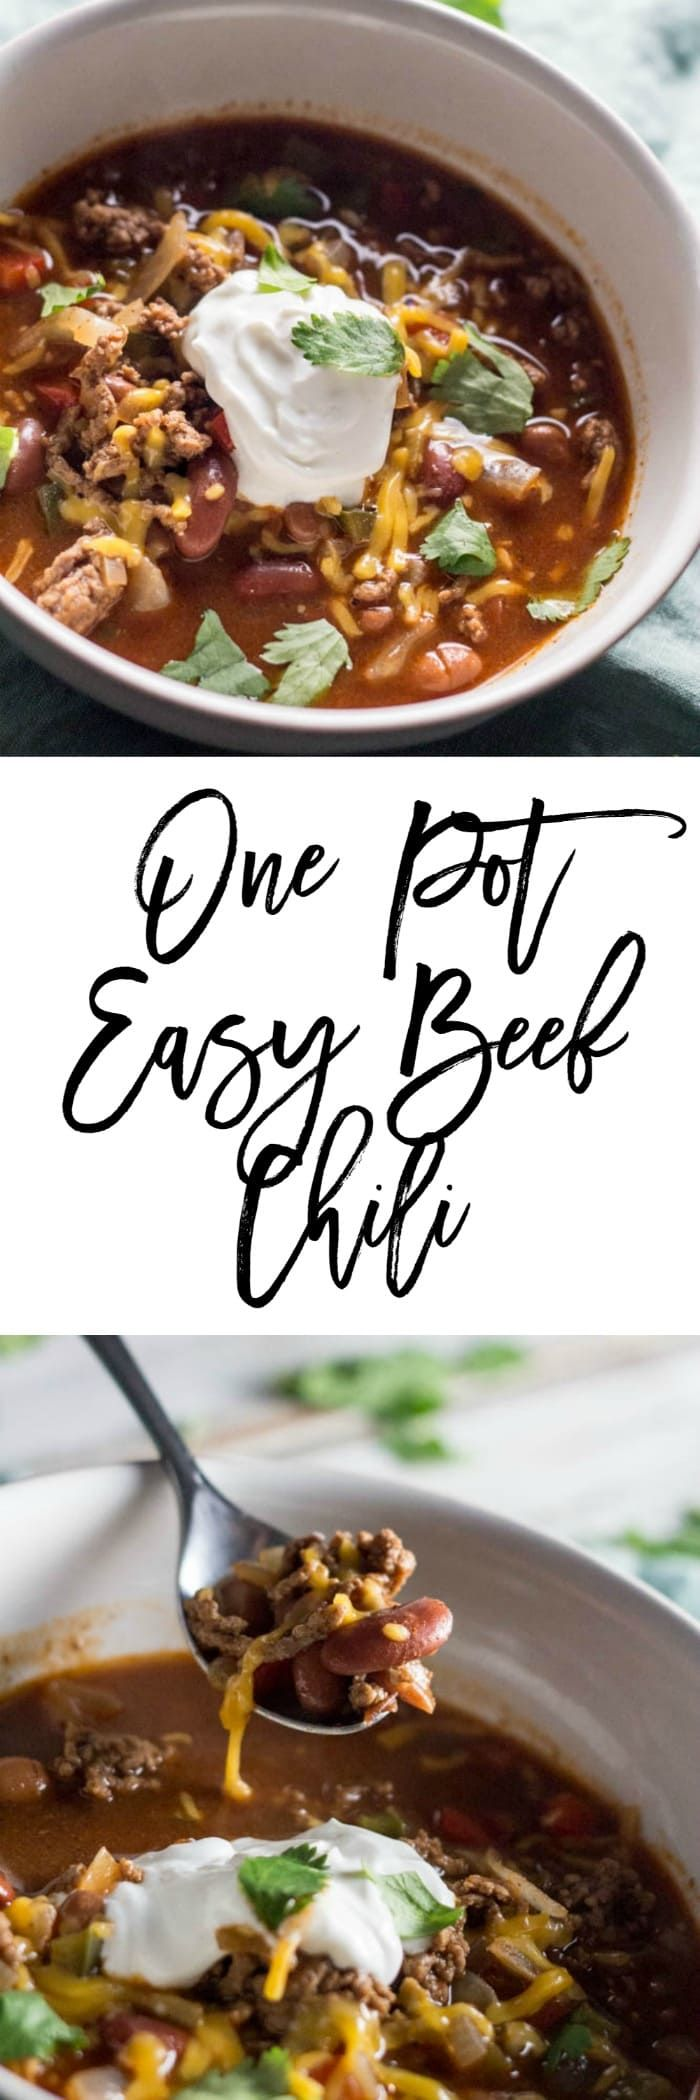 6 SP One Pot Easy Beef Chili